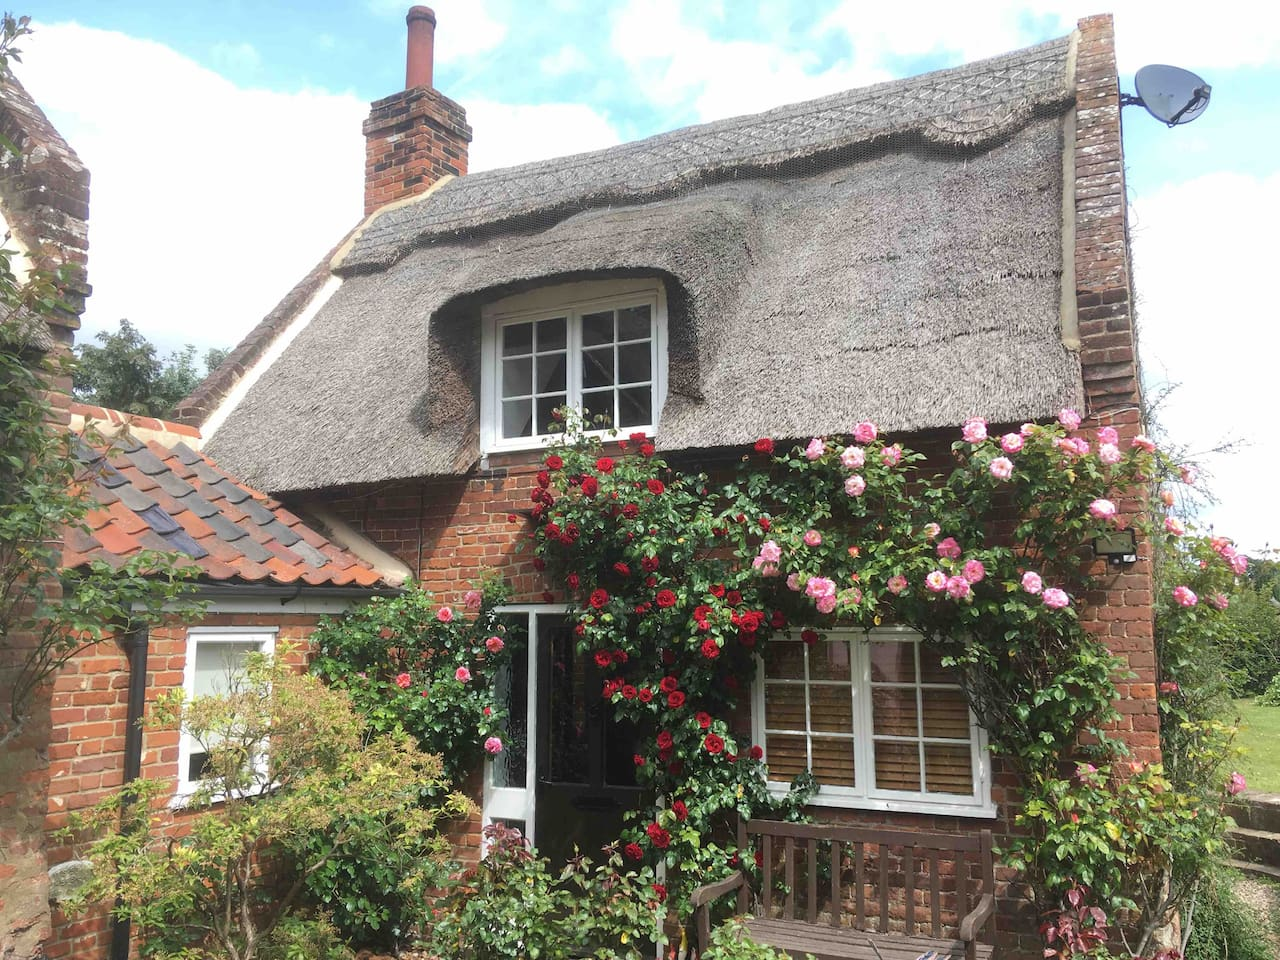 450 years old and one of the first properties to built in Ludham.